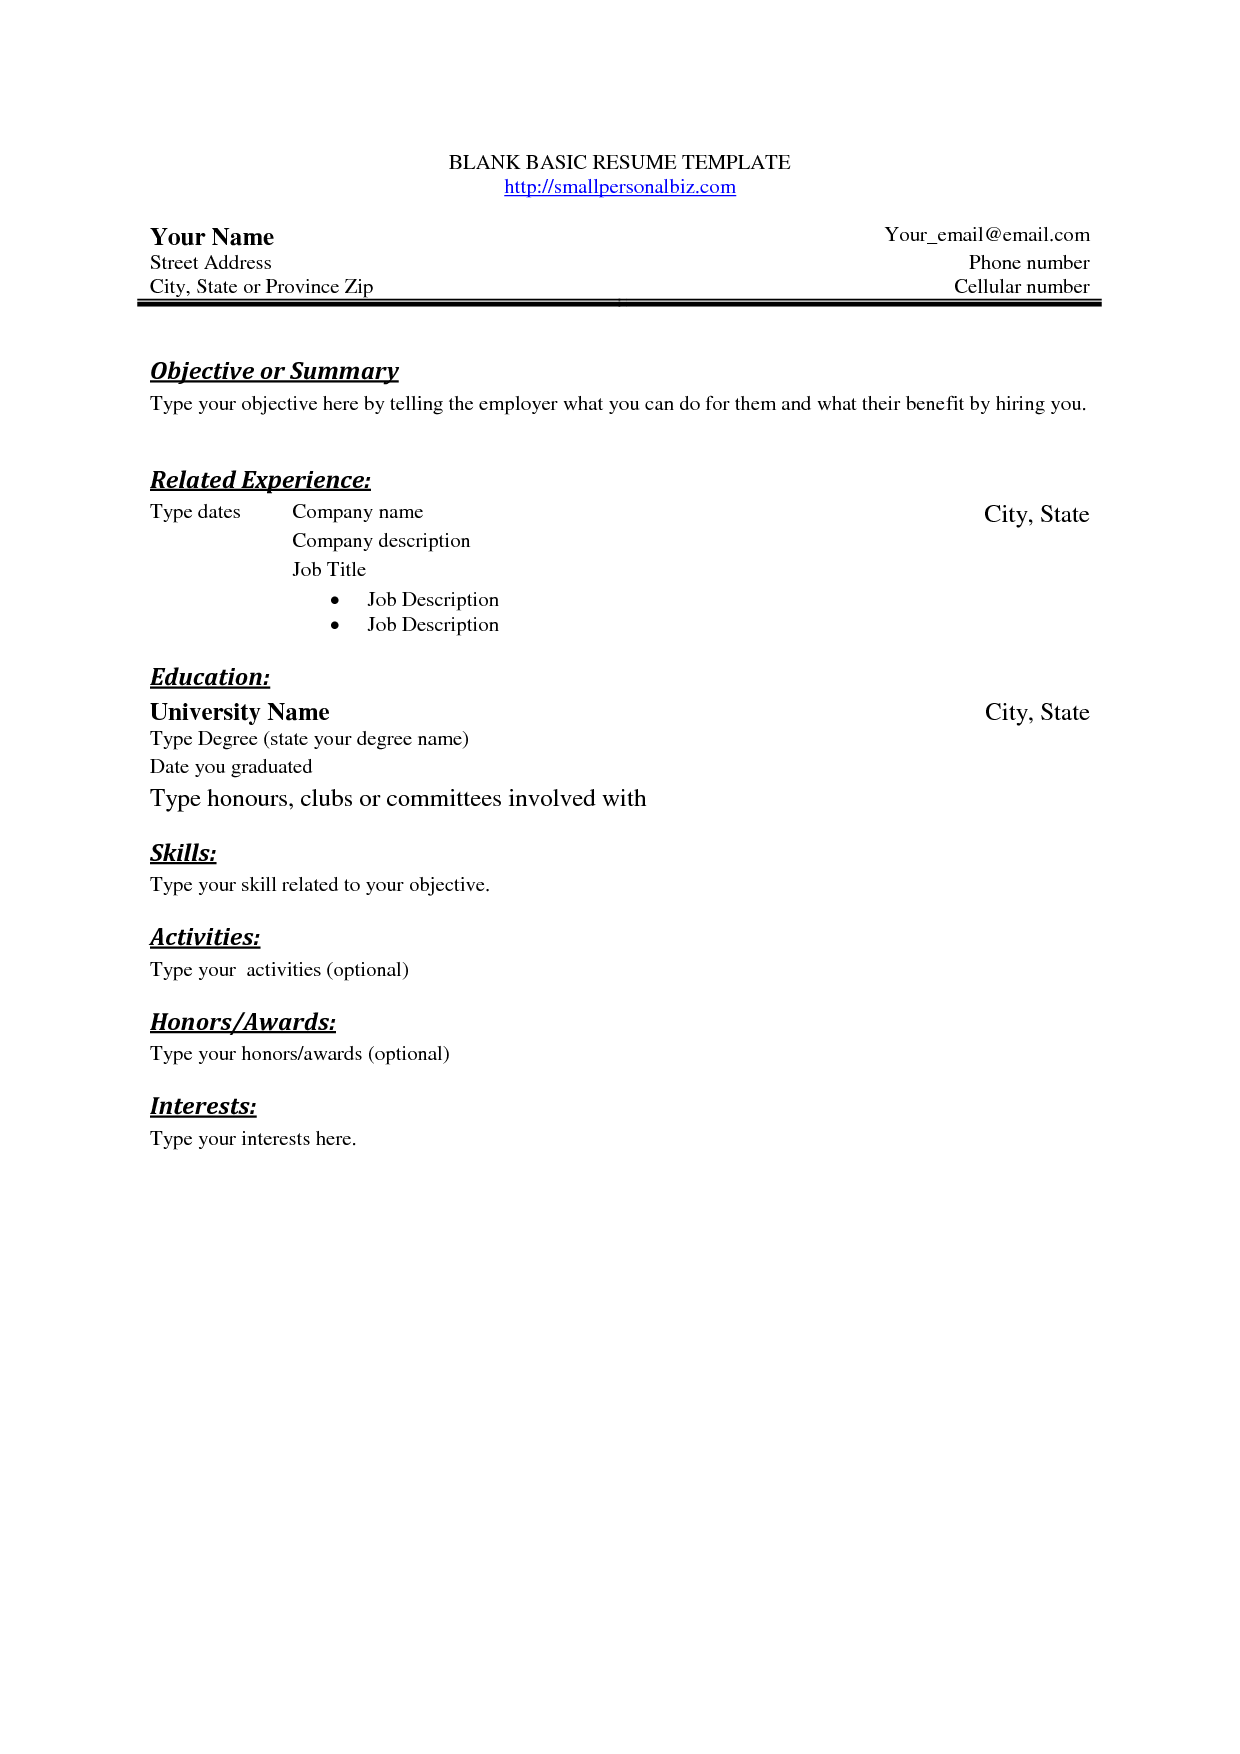 free basic blank resume template free basic sample resume - Free And Easy Resume Builder